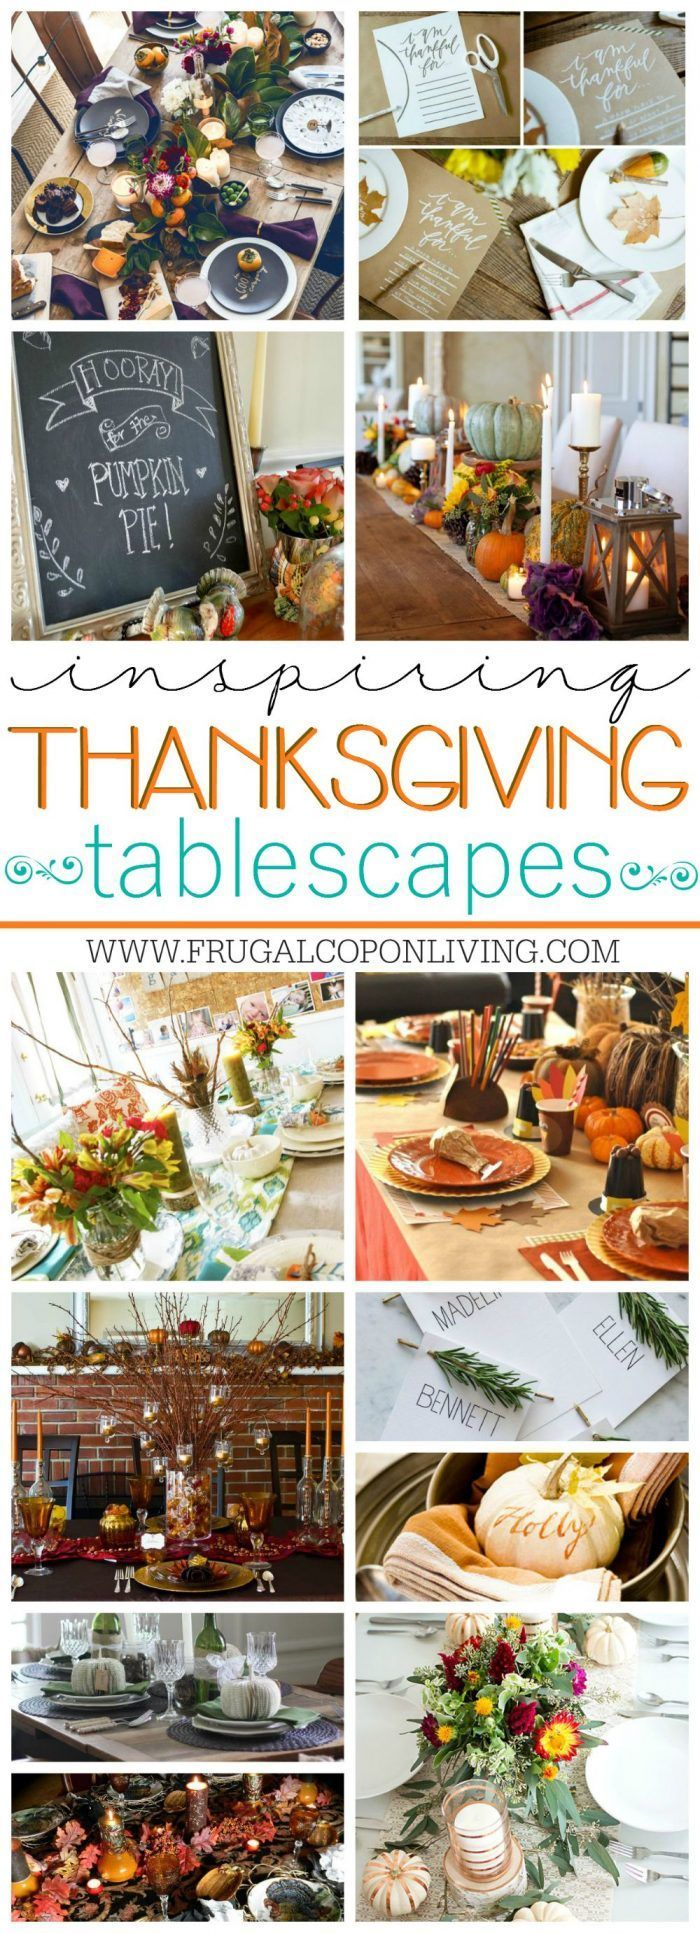 Inspirational Thanksgiving Tablescapes on Frugal Coupon Living. Fall Table Ideas...